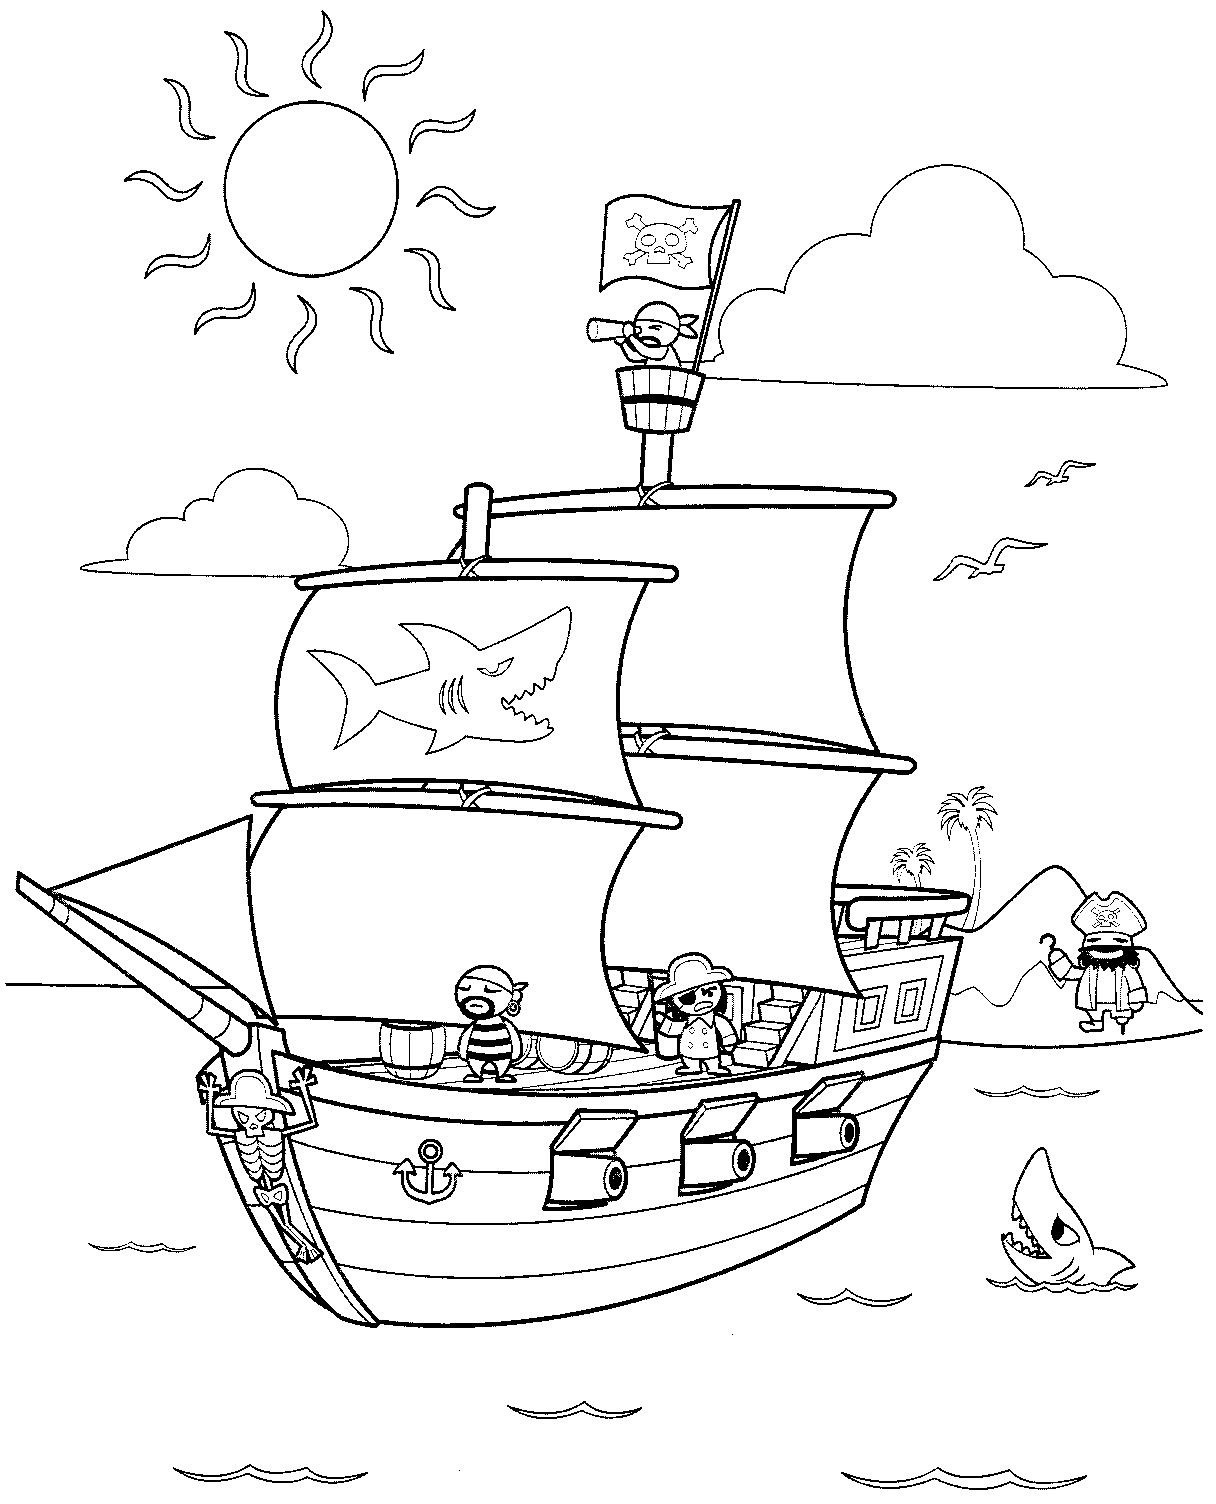 Ship Coloring Pages for Kids | Print Coloring Pages